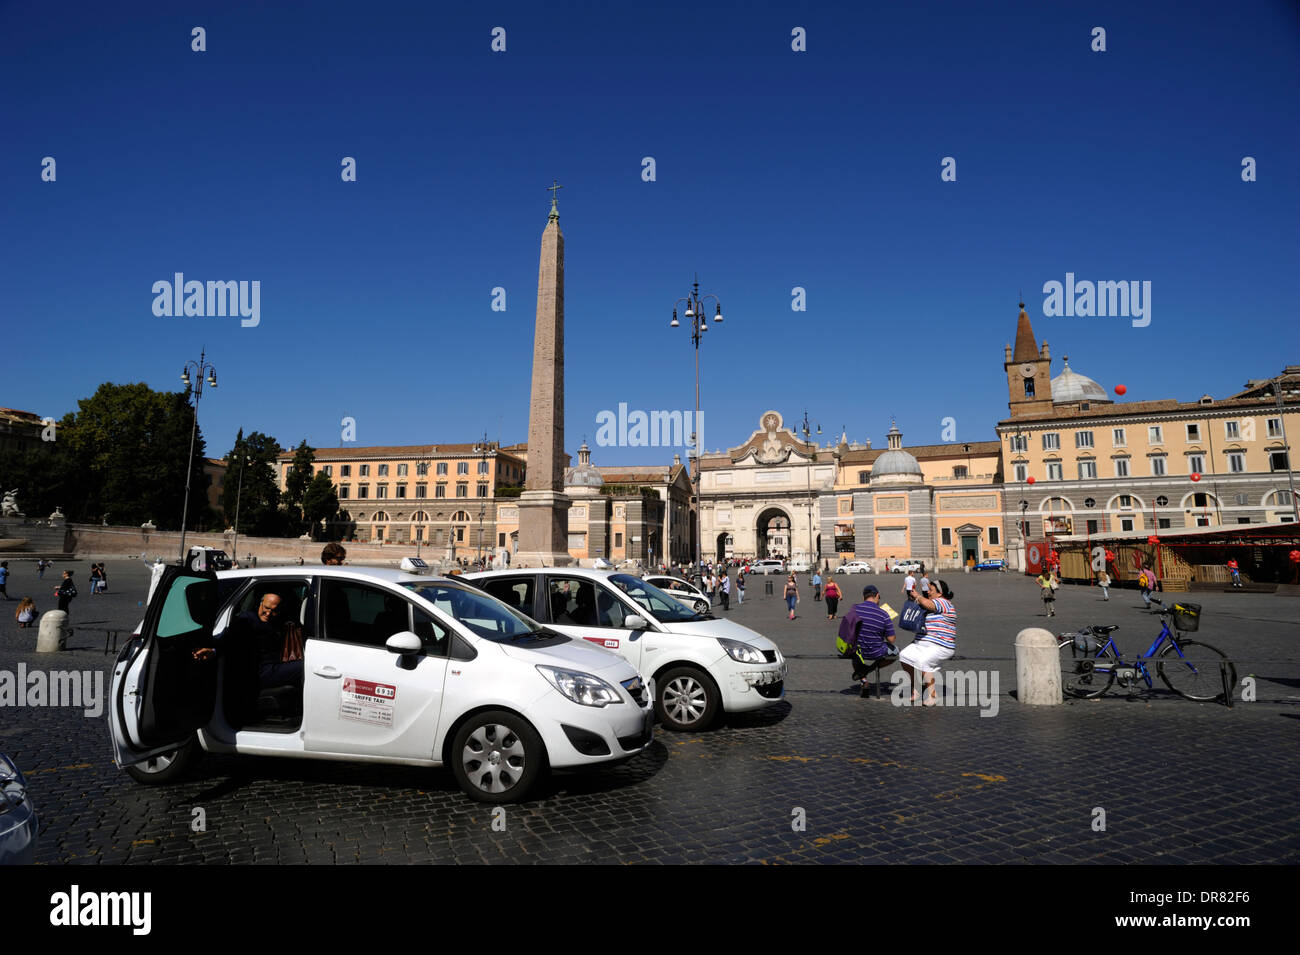 L'Italie, Rome, la Piazza del popolo, taxi Photo Stock